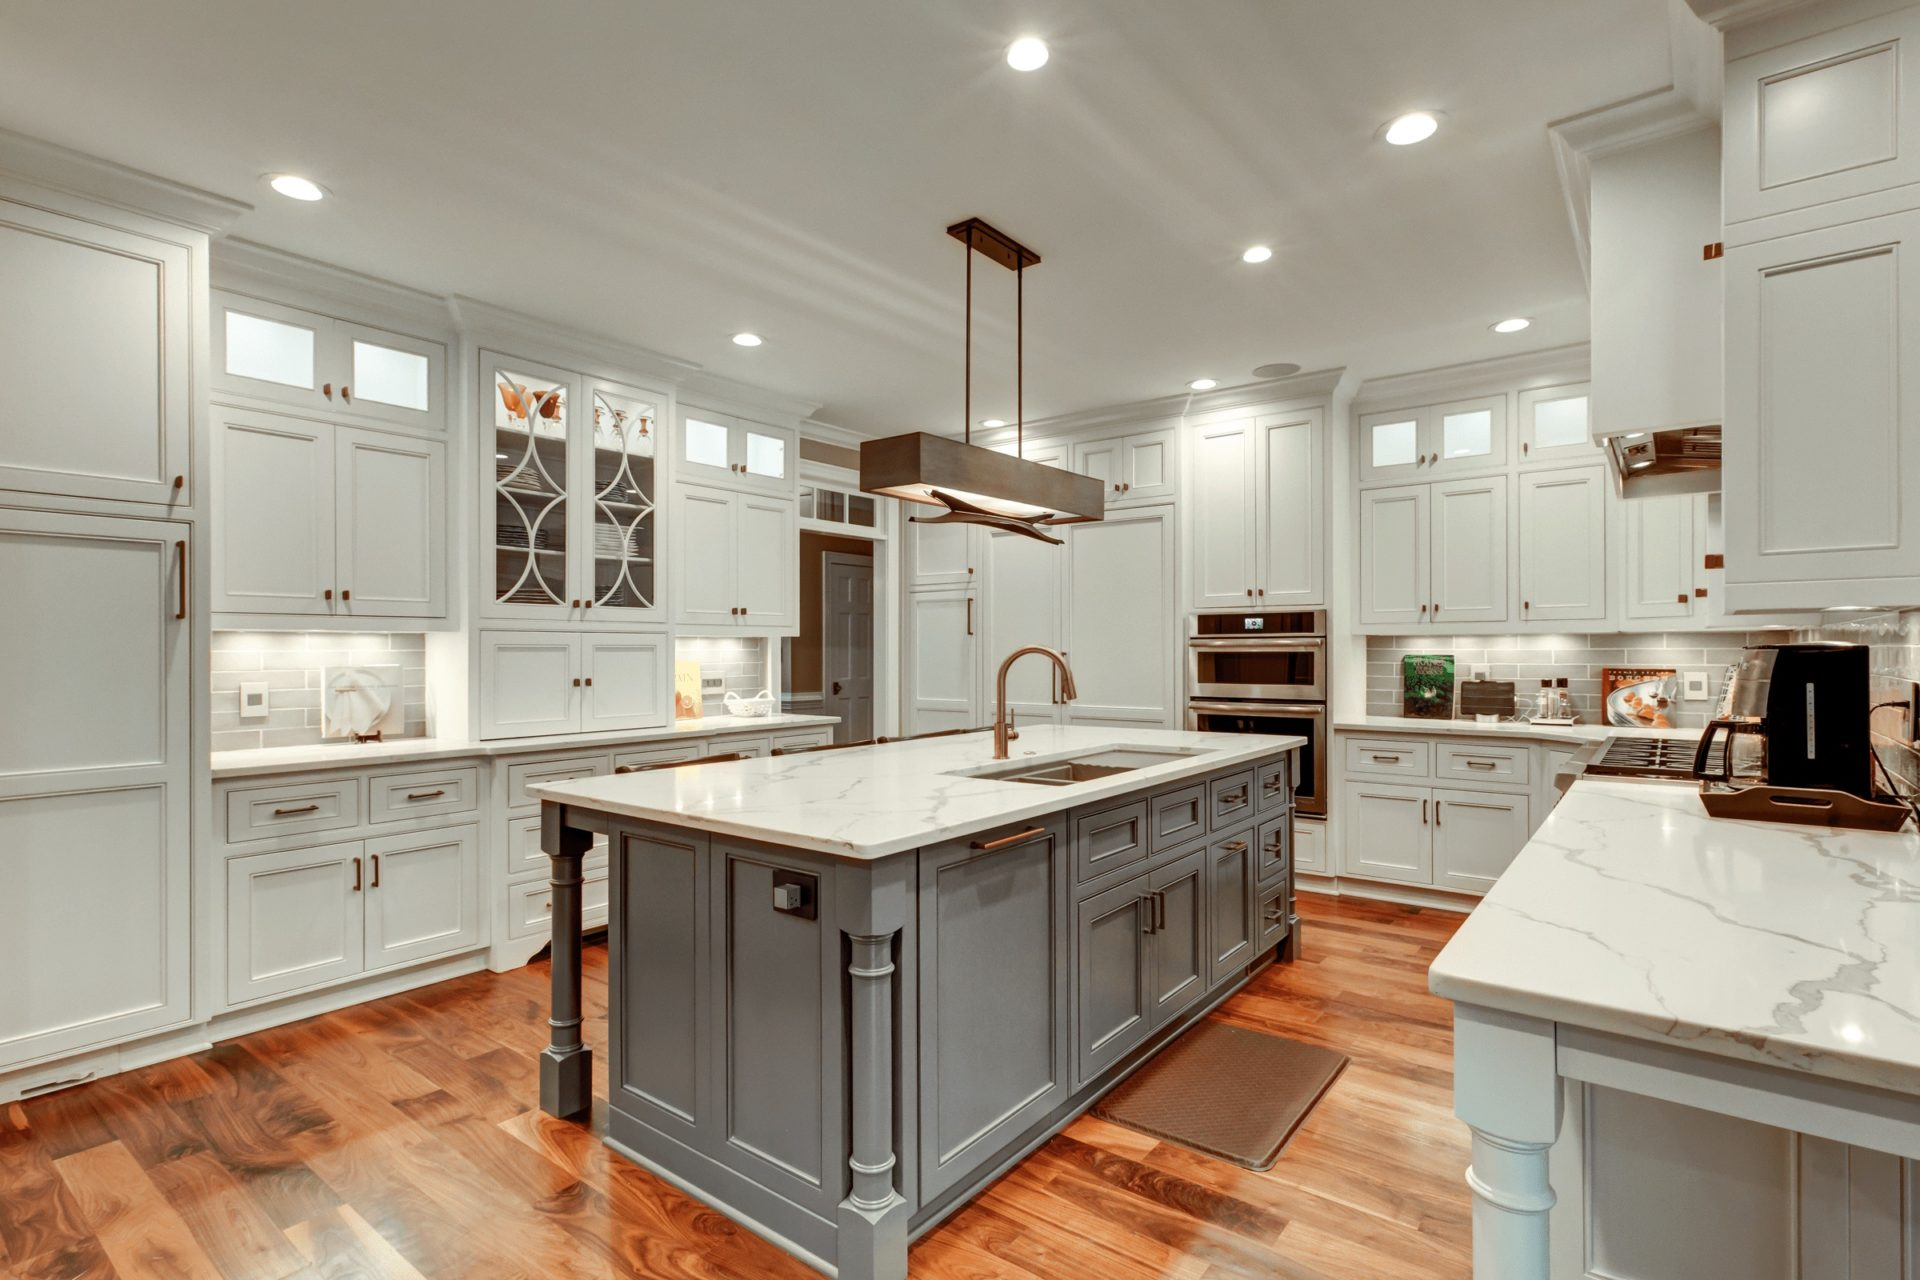 upscale kitchen with white marble countertops and white cabinets